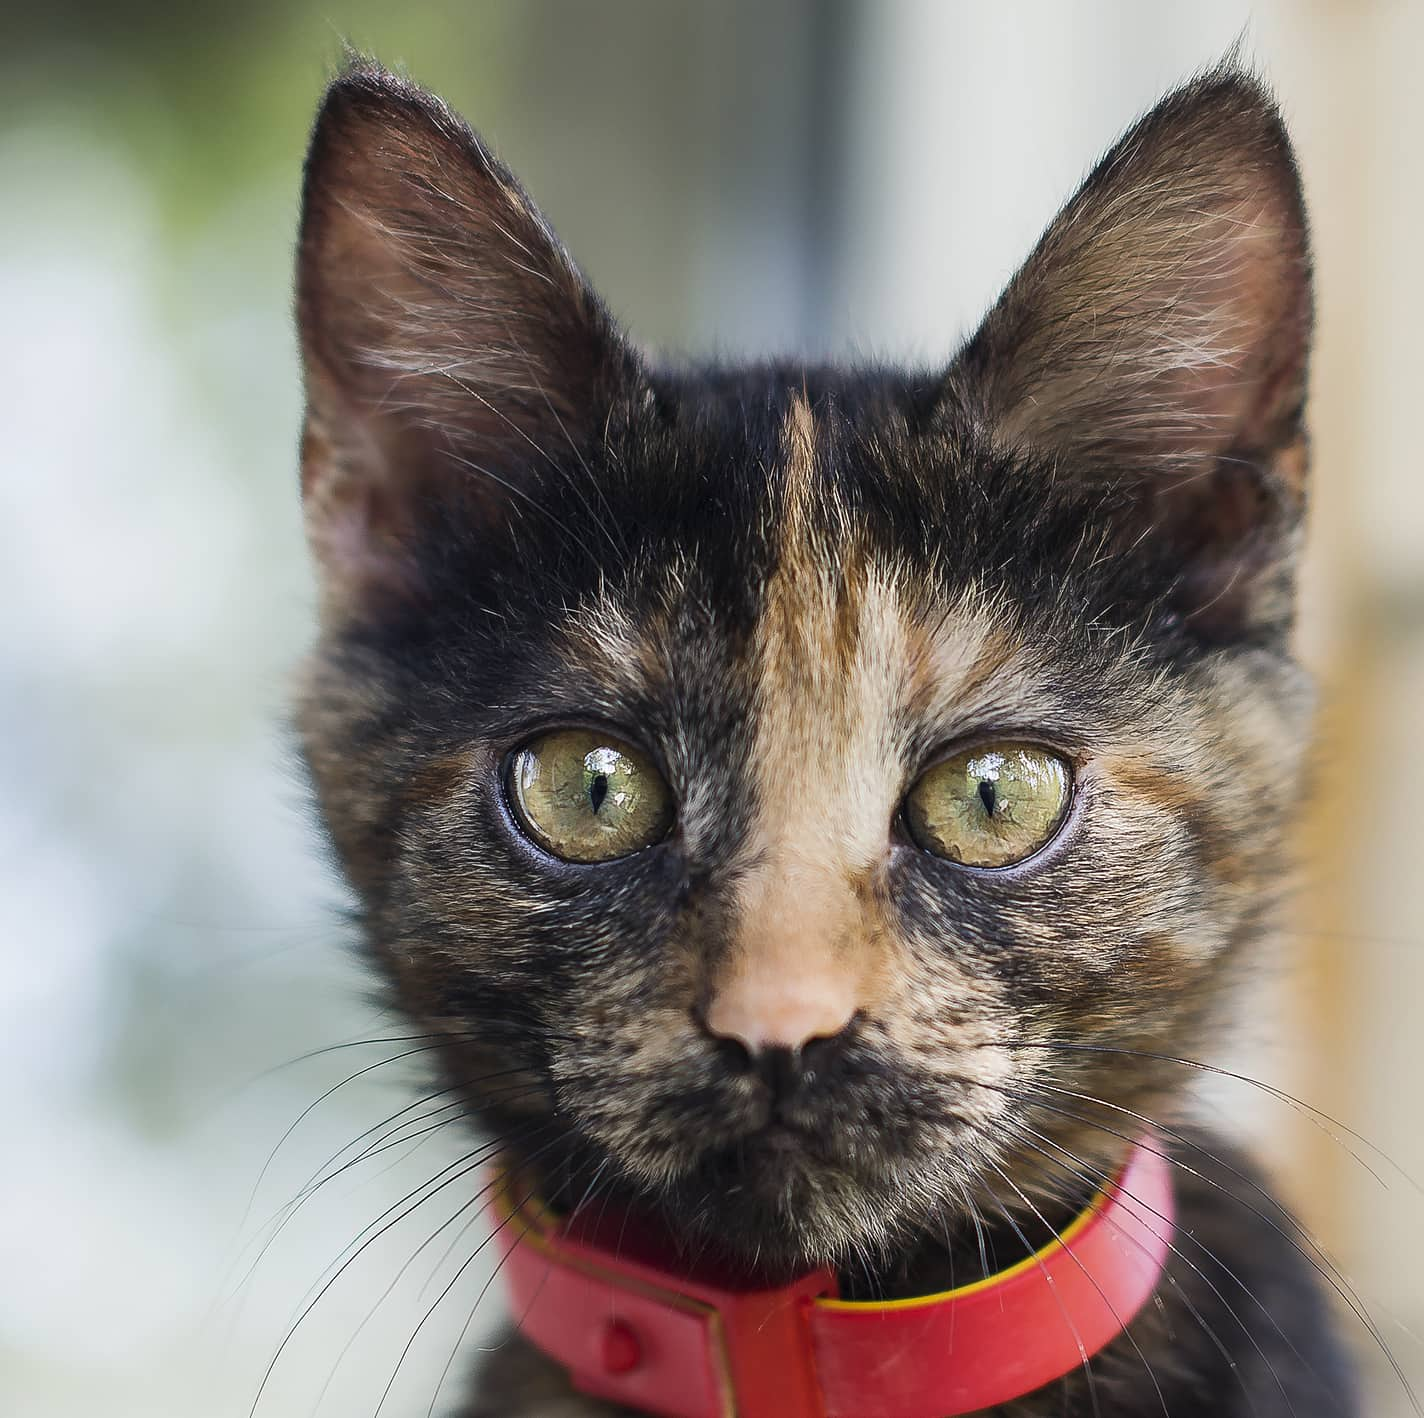 Close-up of black and orange kitten in red collar.